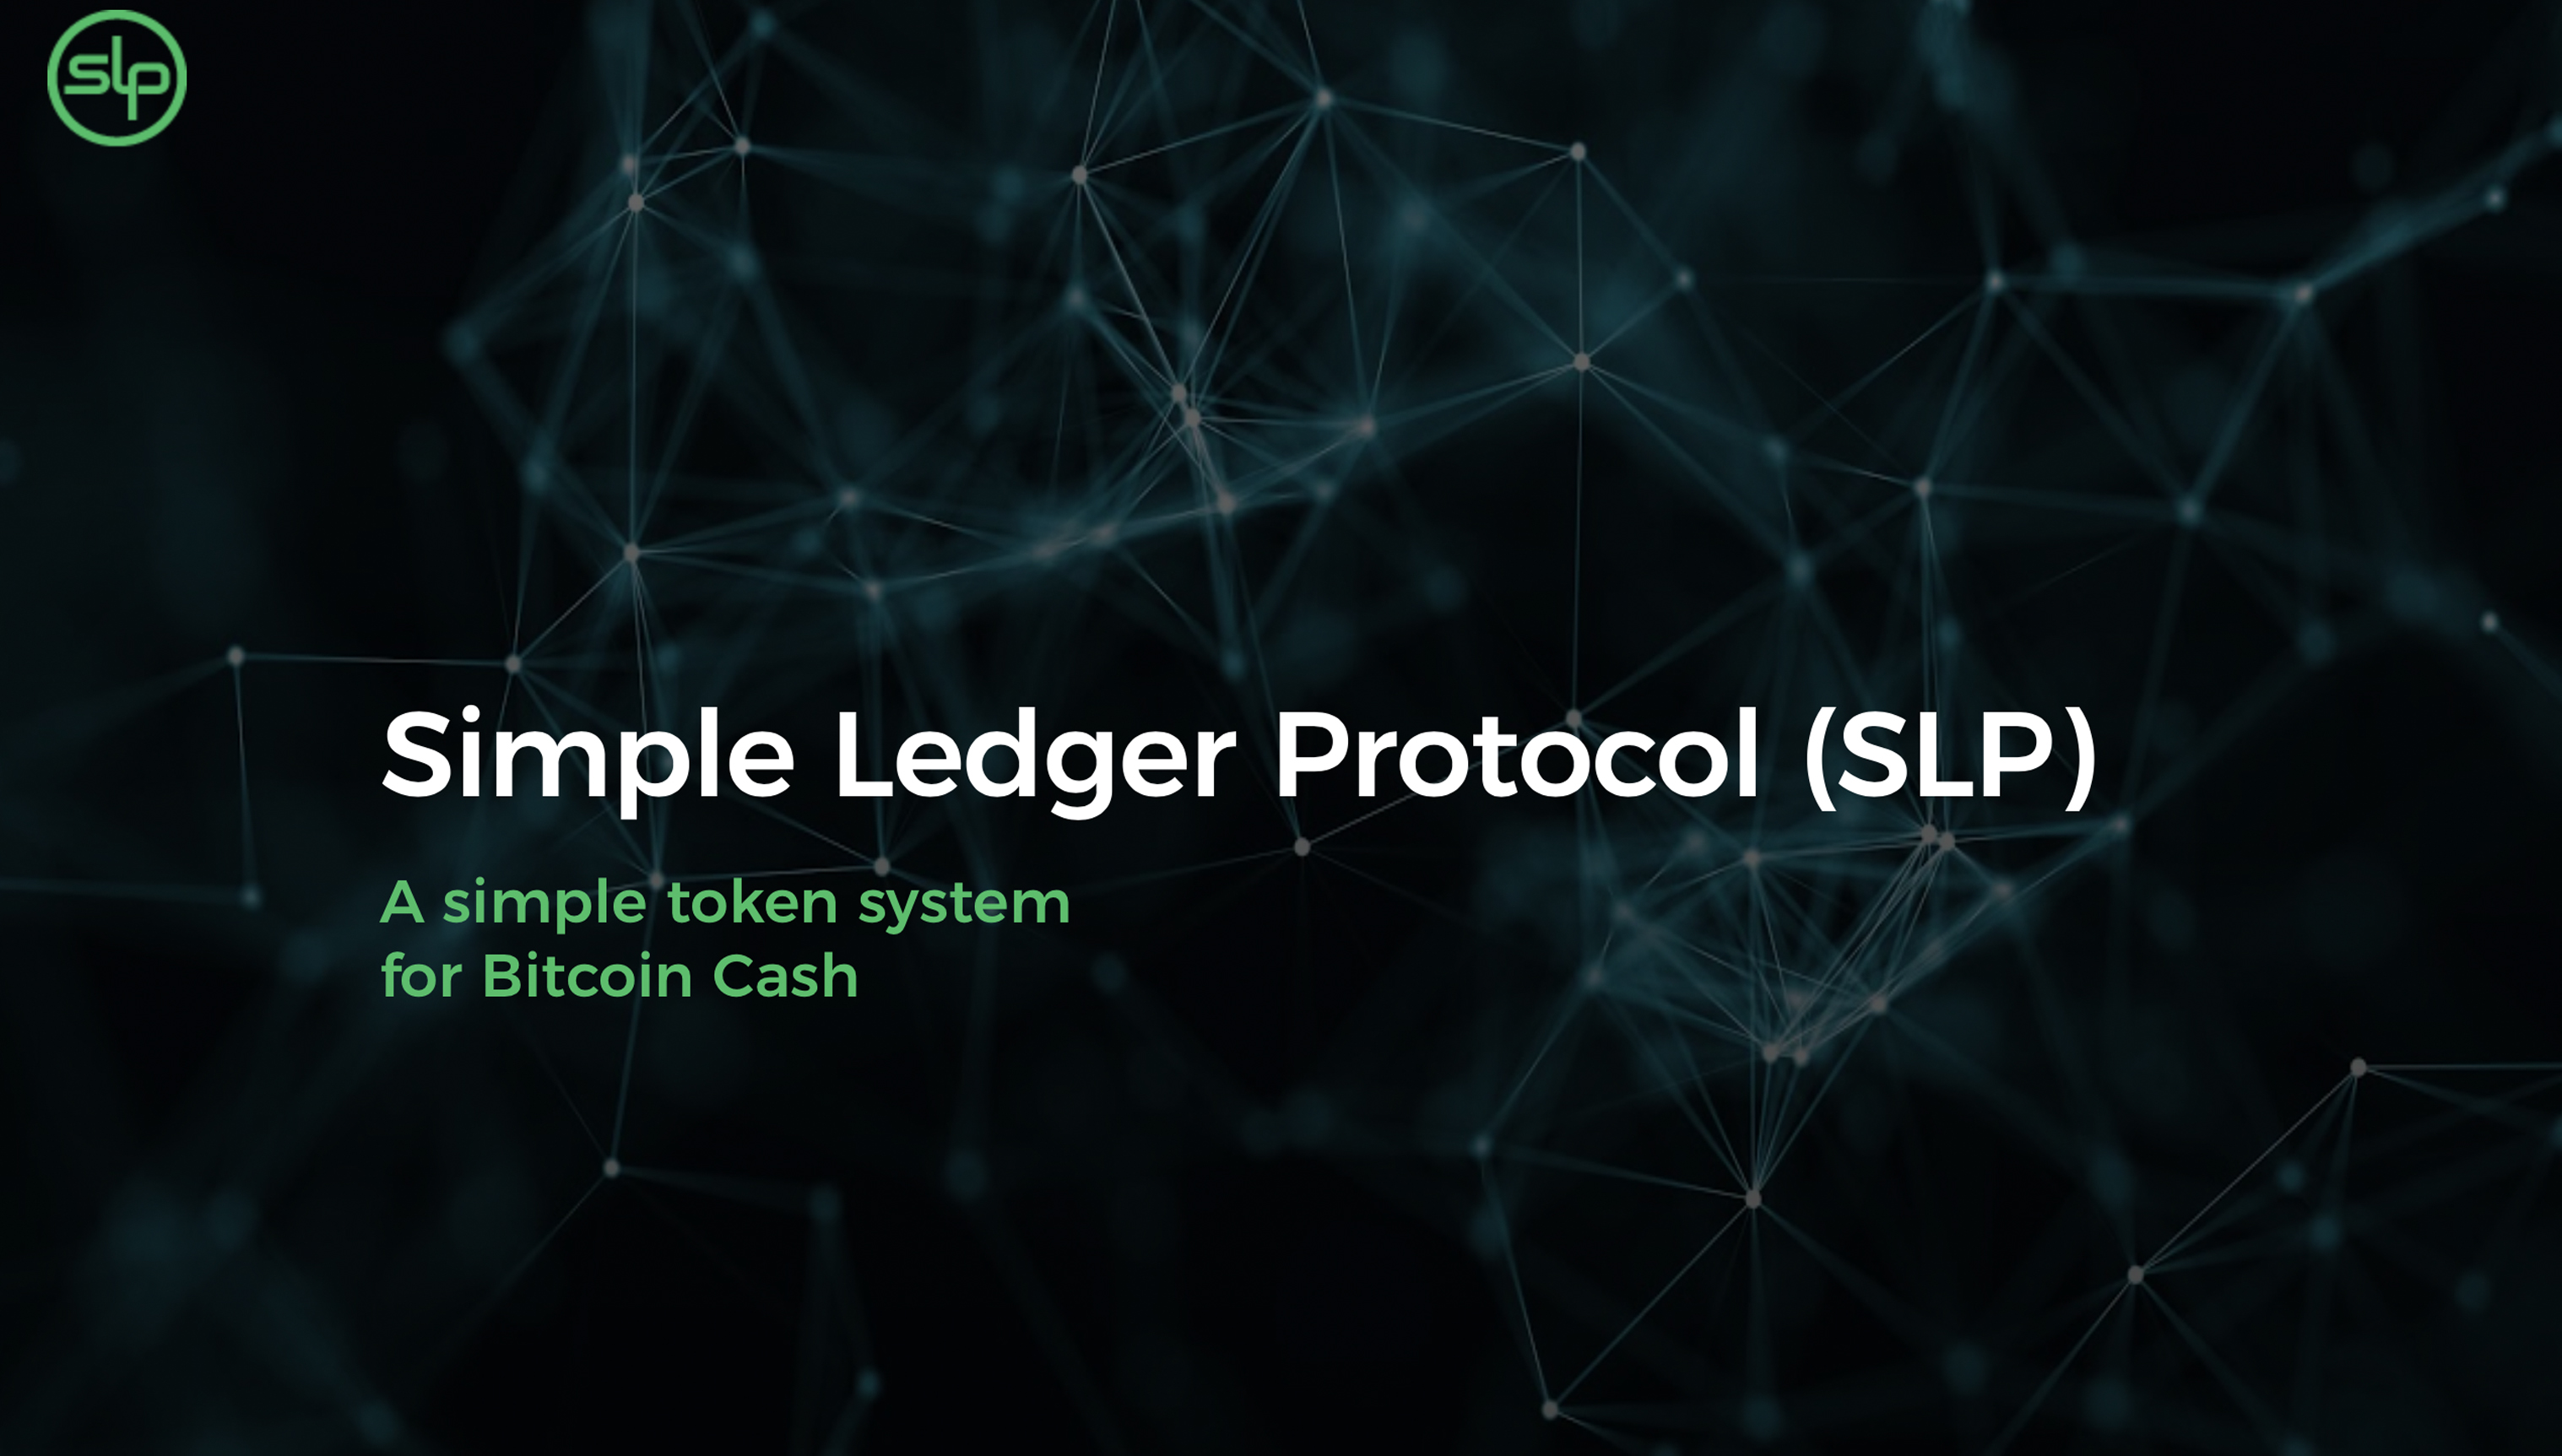 Simple Ledger Token Creation Platform Launches on the BCH Network